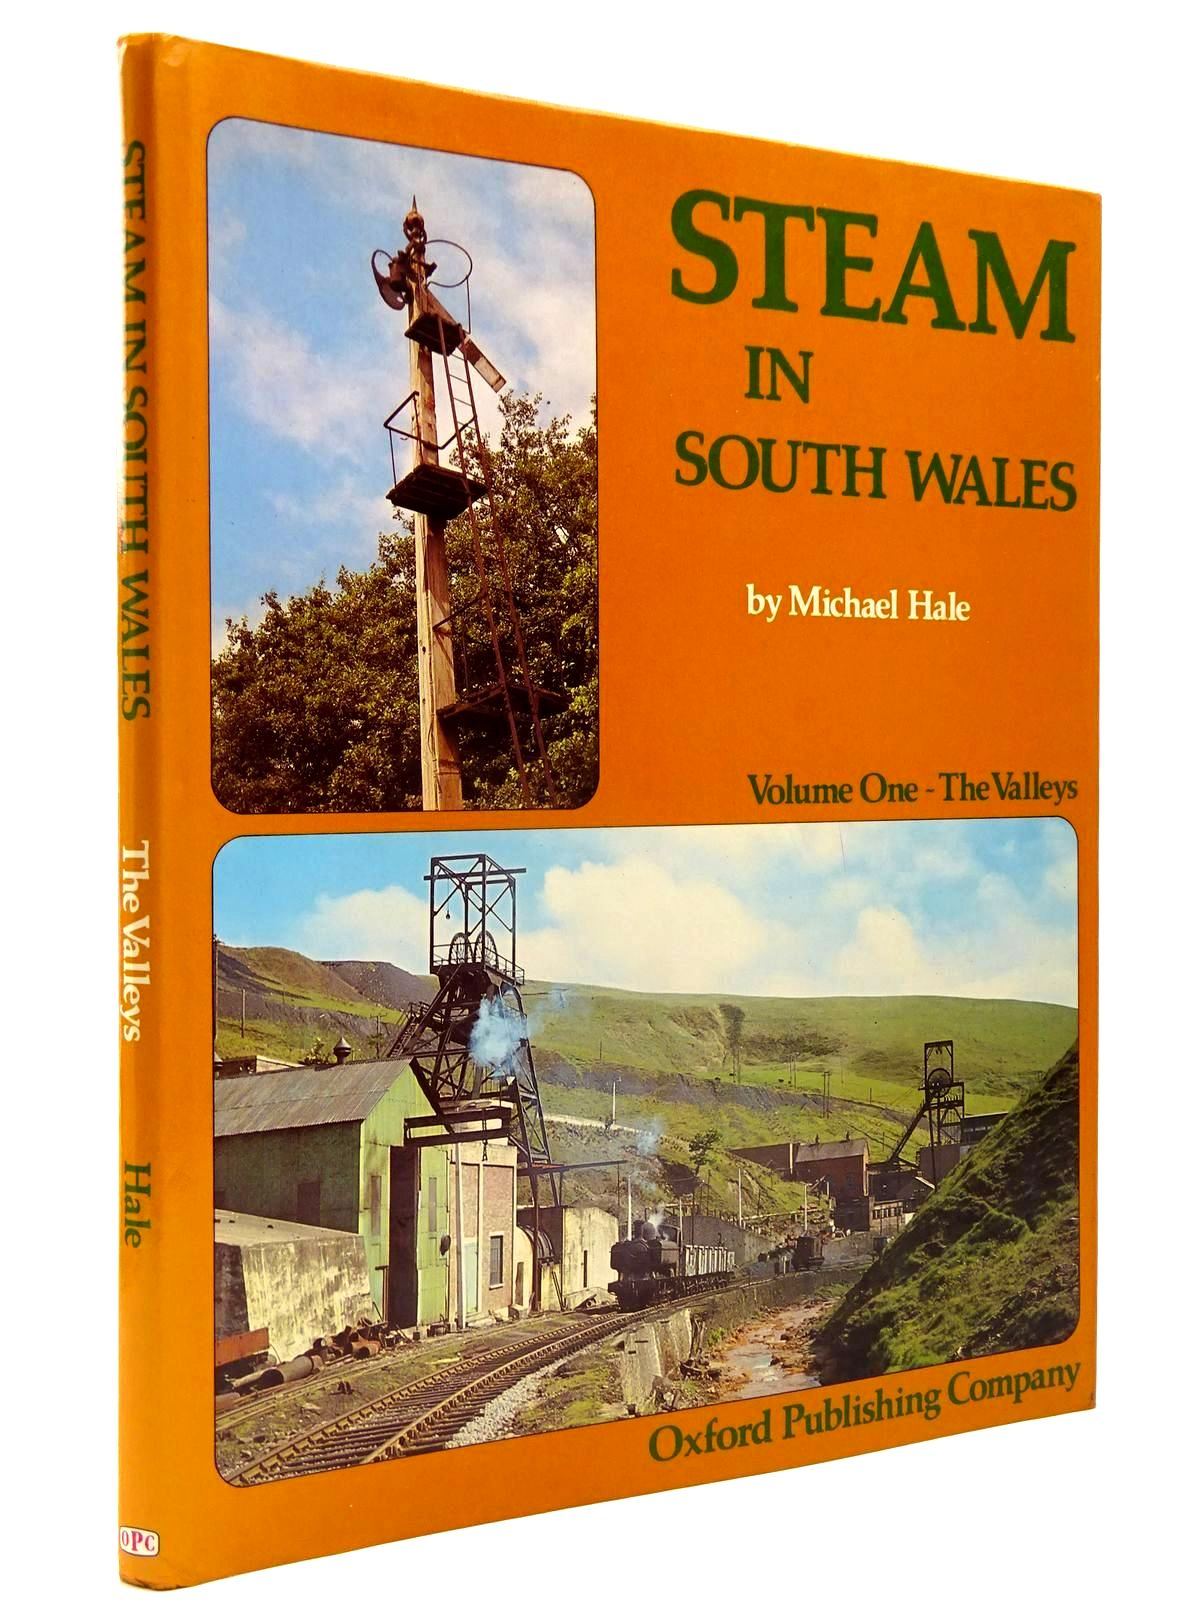 Photo of STEAM IN SOUTH WALES VOLUME ONE - THE VALLEYS written by Hale, Michael published by Oxford Publishing (STOCK CODE: 2130386)  for sale by Stella & Rose's Books